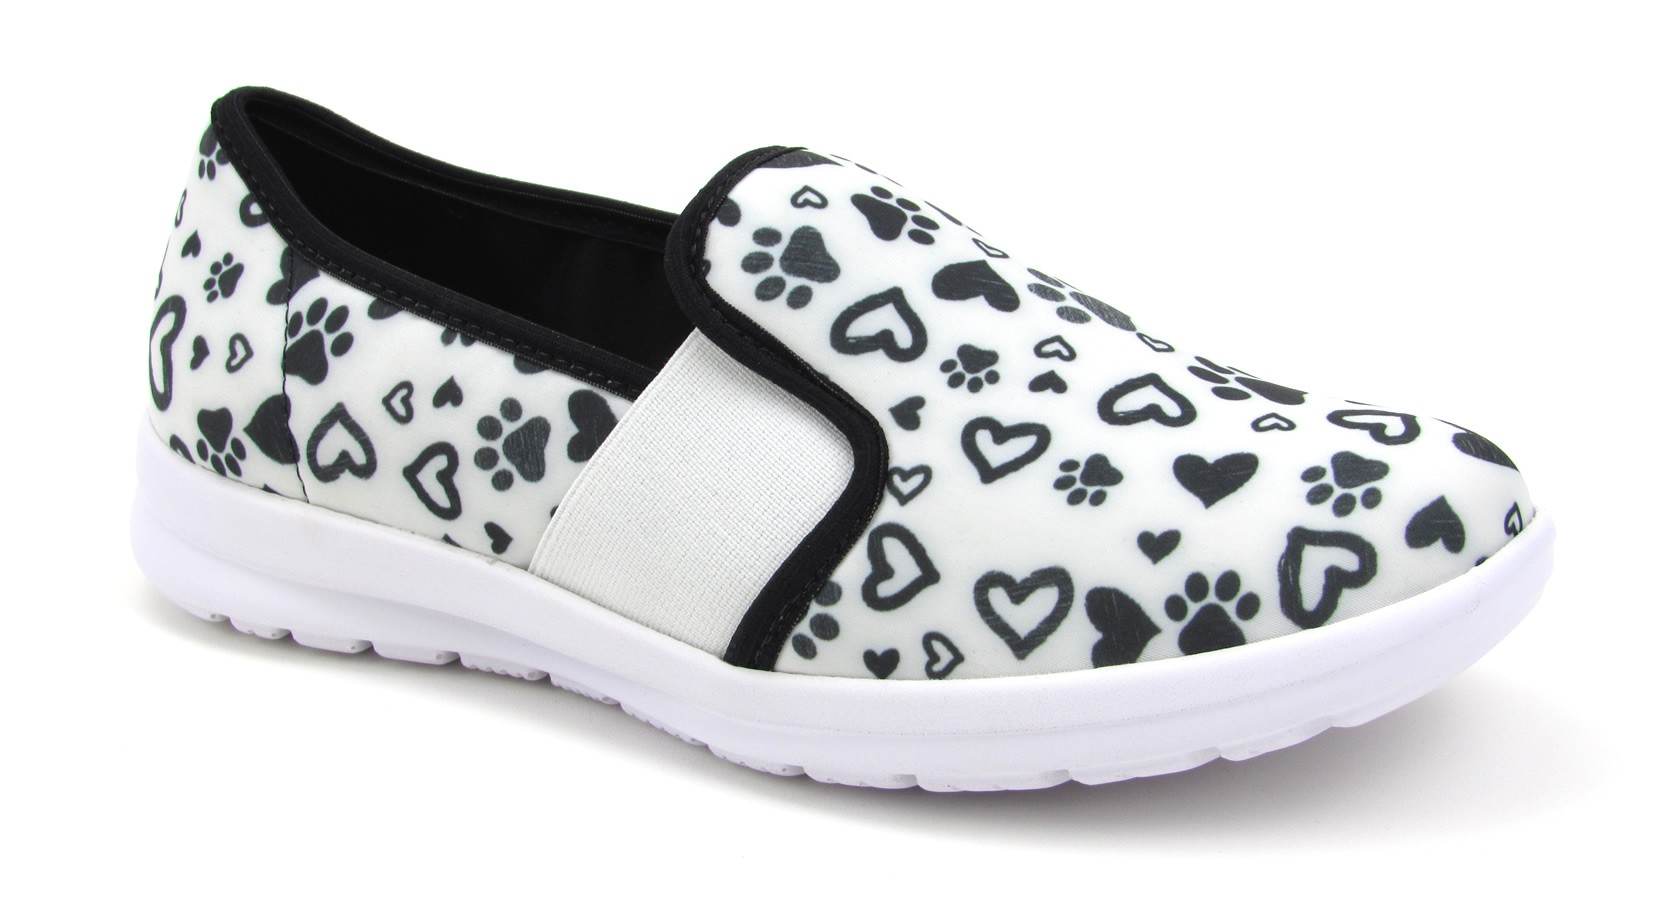 Florence Sunny - Paws and Hearts - Black with White